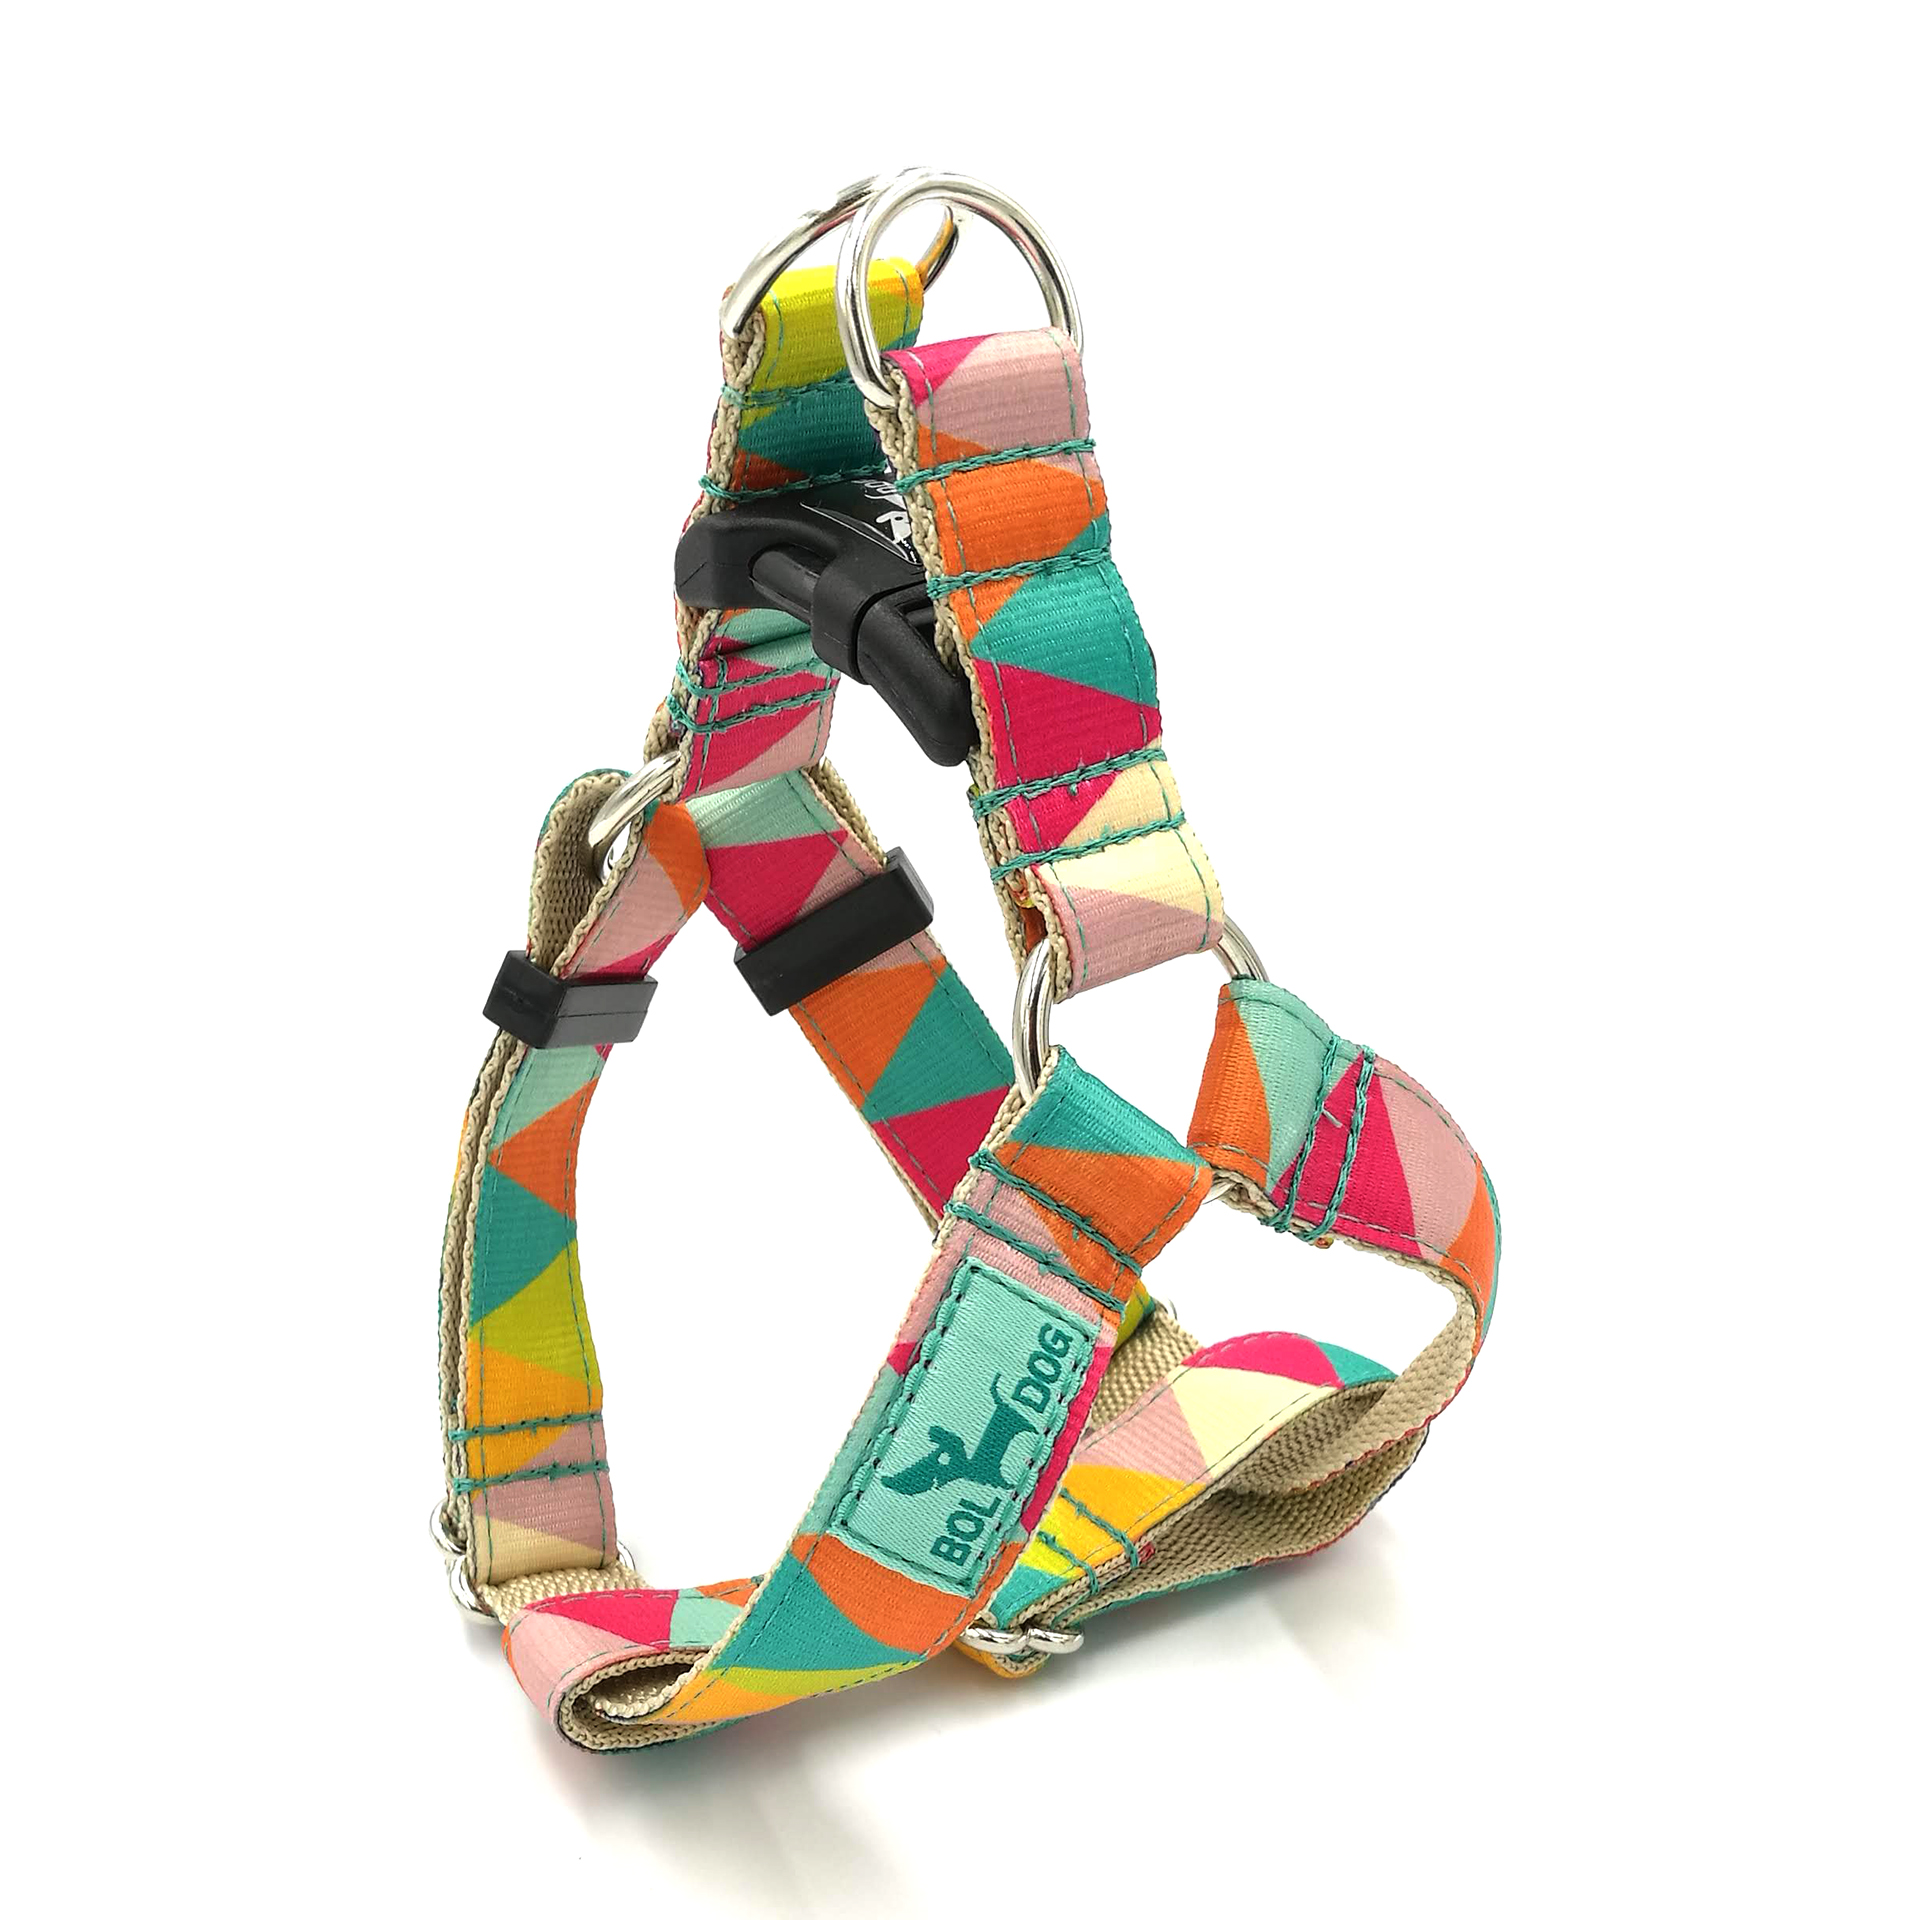 Zigzag girl dog harness